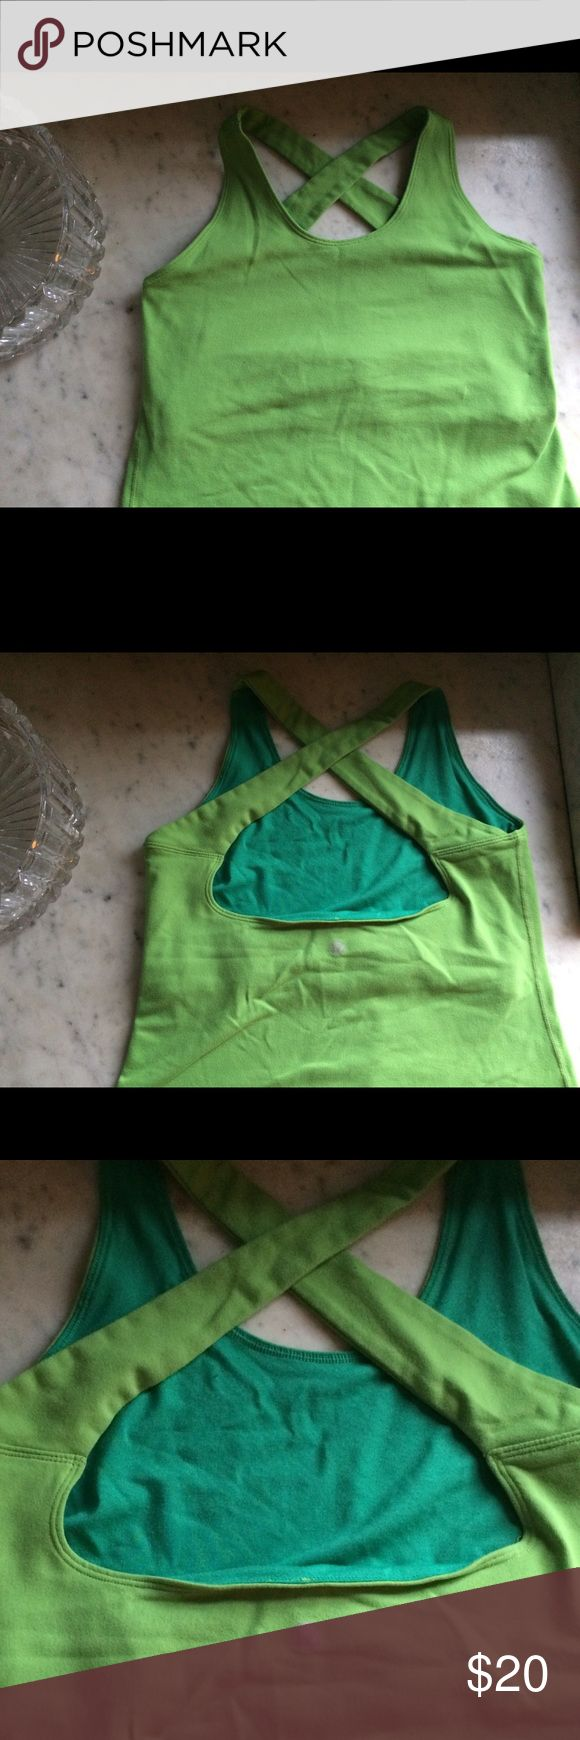 Green cross back Lululemon tank top Cute green tank with cross back straps. In good condition no tag but fits like a 6 lululemon athletica Tops Tank Tops